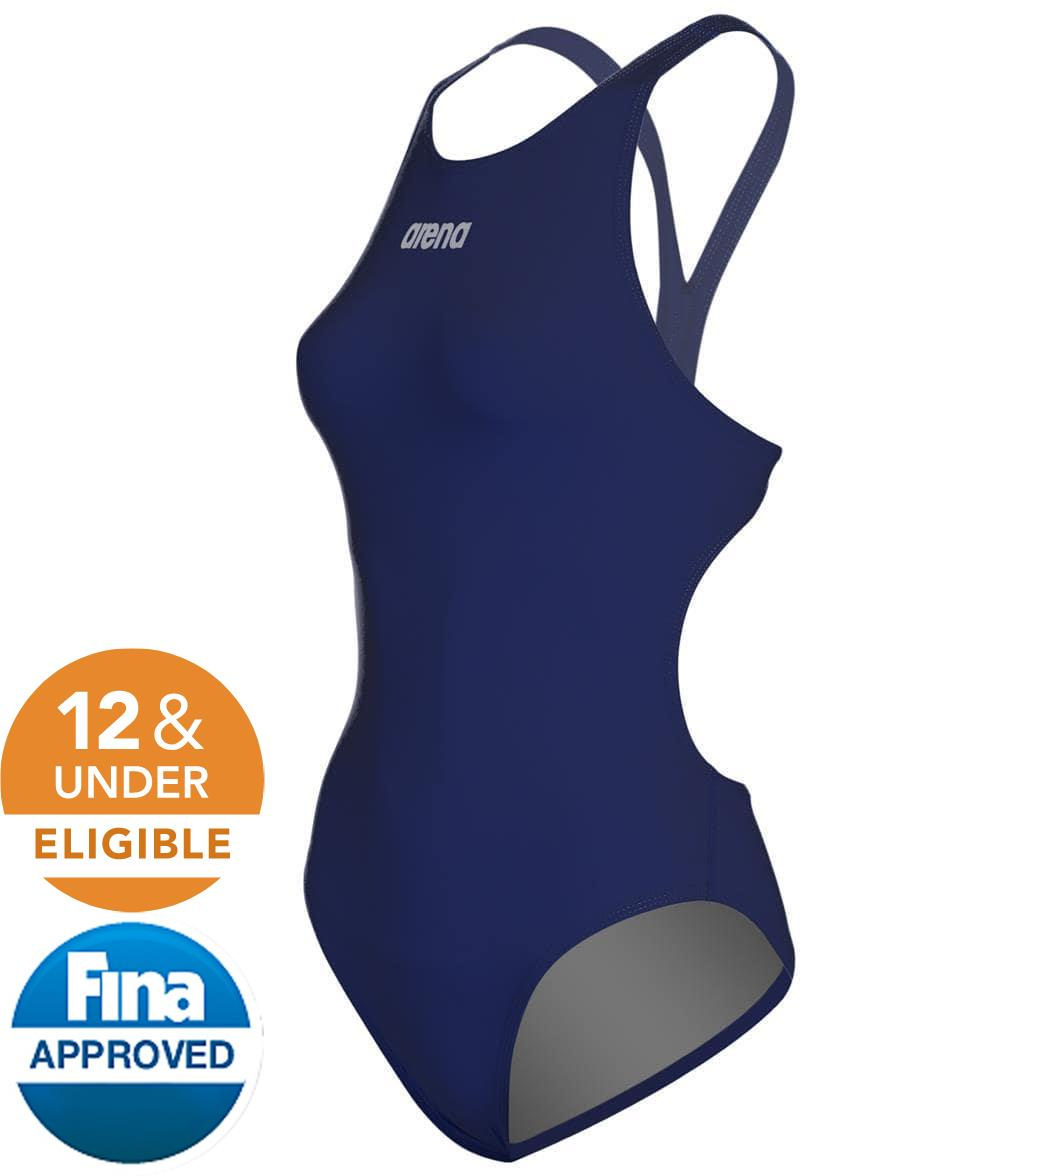 2bc9a50b51 Arena Women's Powerskin ST Classic Tech Suit Swimsuit at SwimOutlet.com -  Free Shipping